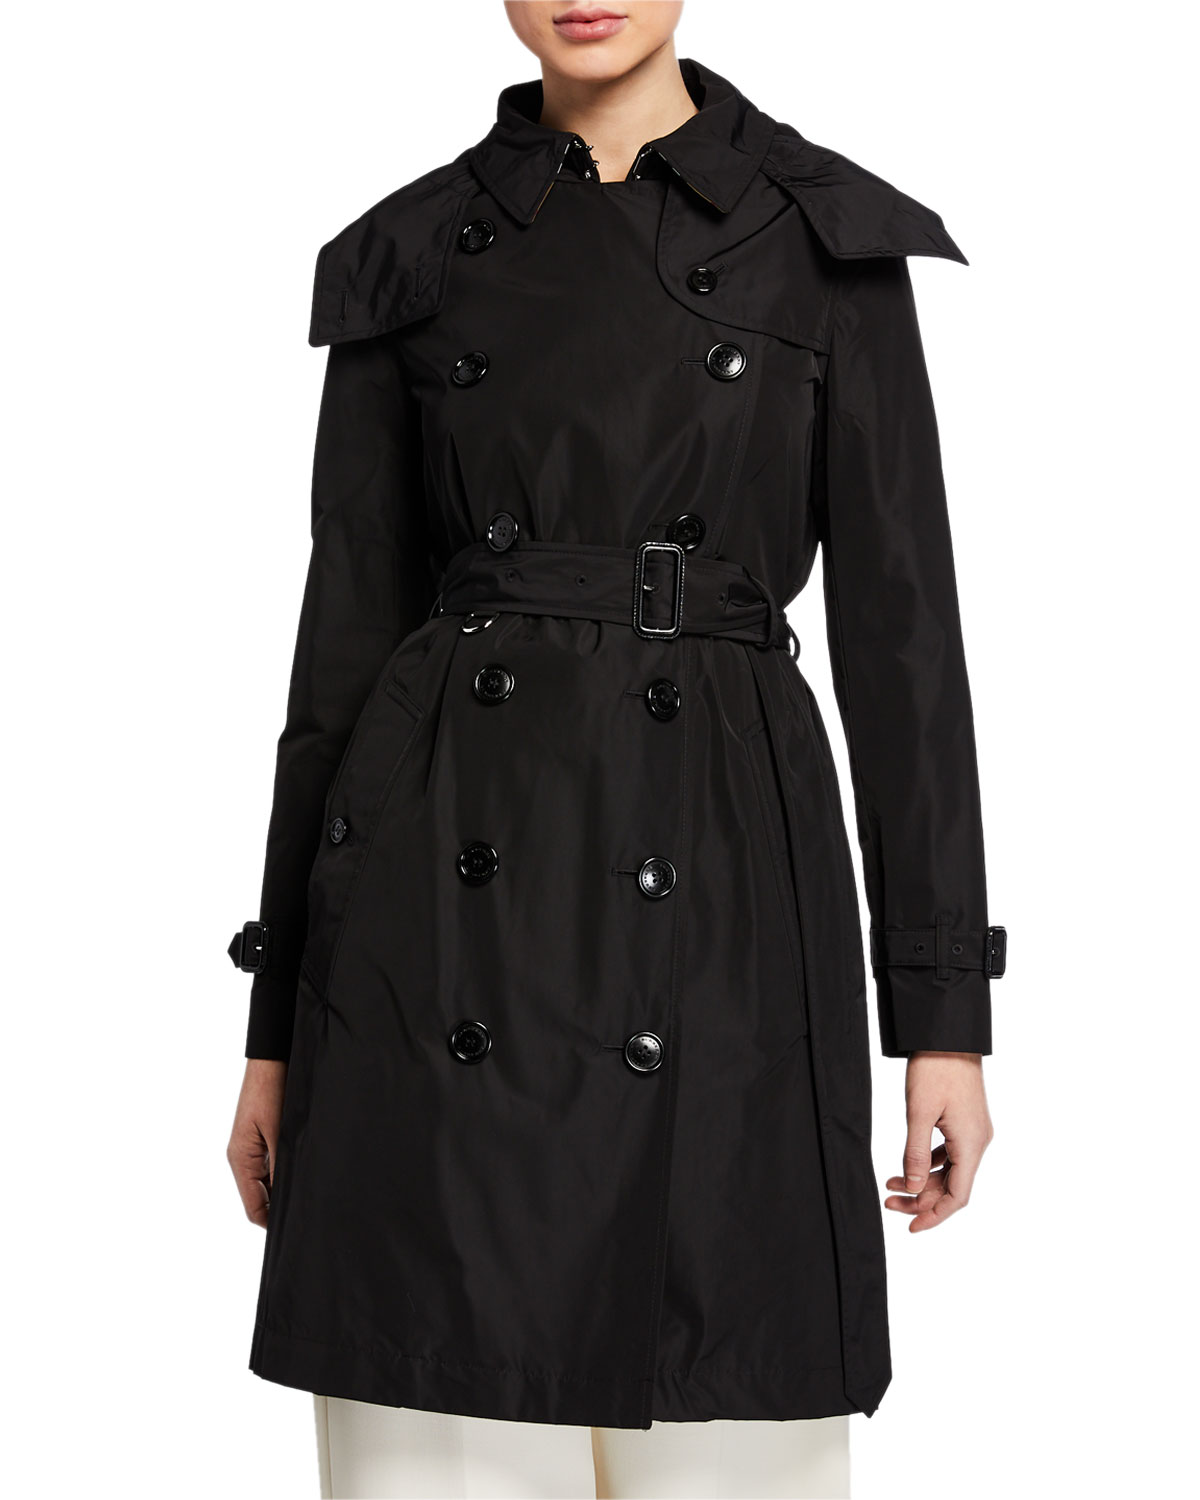 aac3d3ad337e0 Burberry Kensington Double-Breasted Trench Coat w  Detachable Hood ...